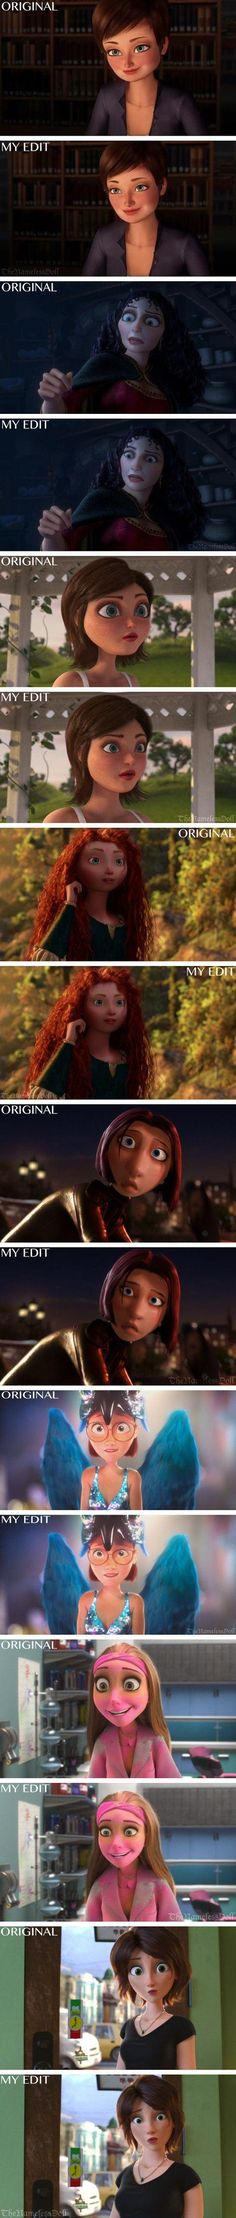 Disney characters with more realistic faces